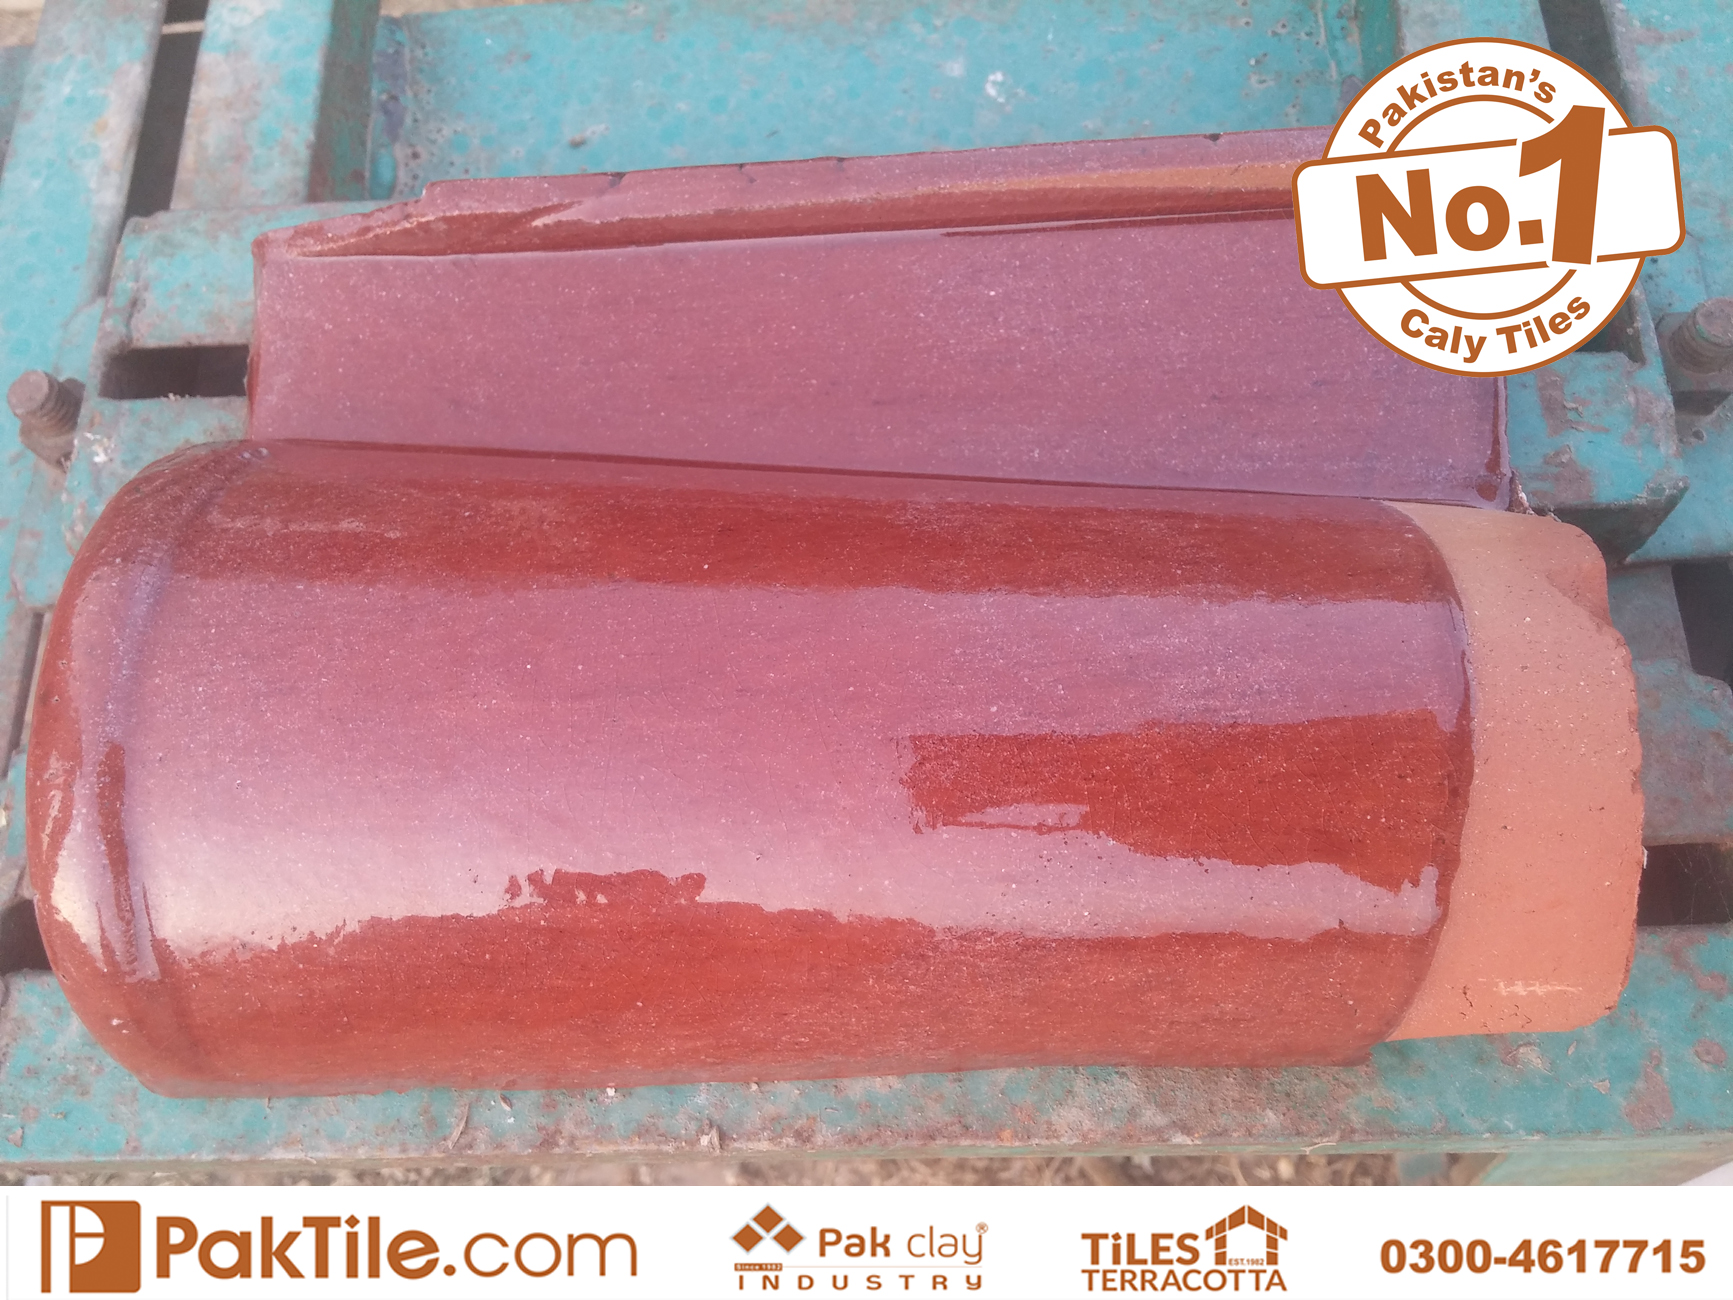 1 Pak clay red terracotta bricks spanish khaprail roofing tiles pattern store price in karachi images